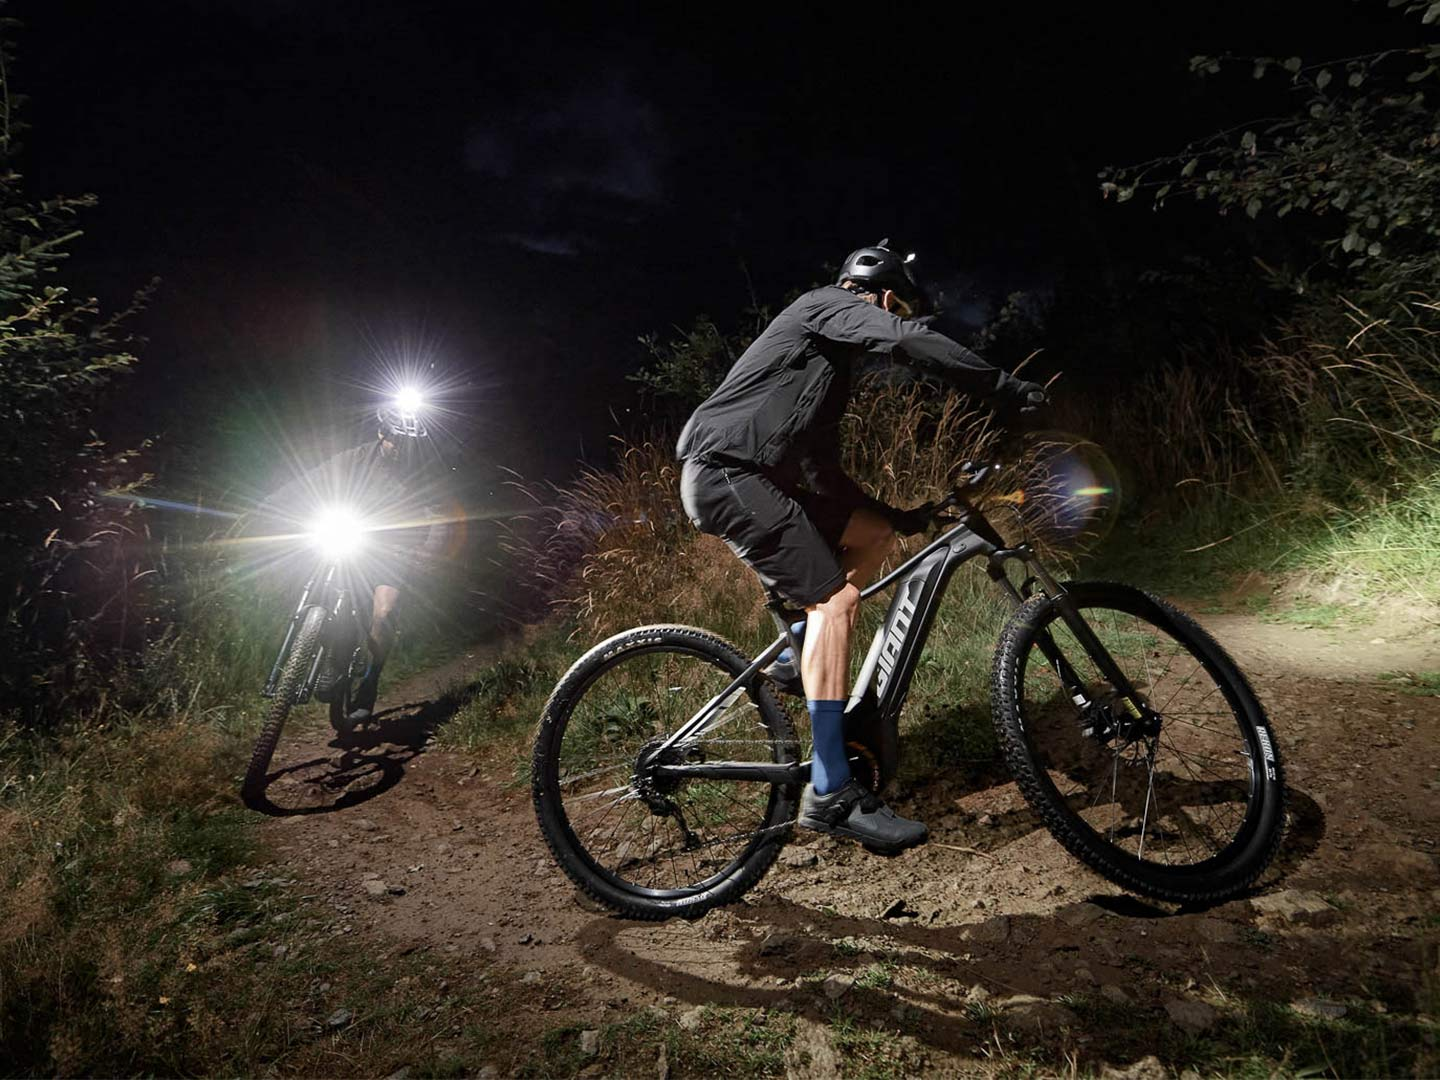 riding trails at night